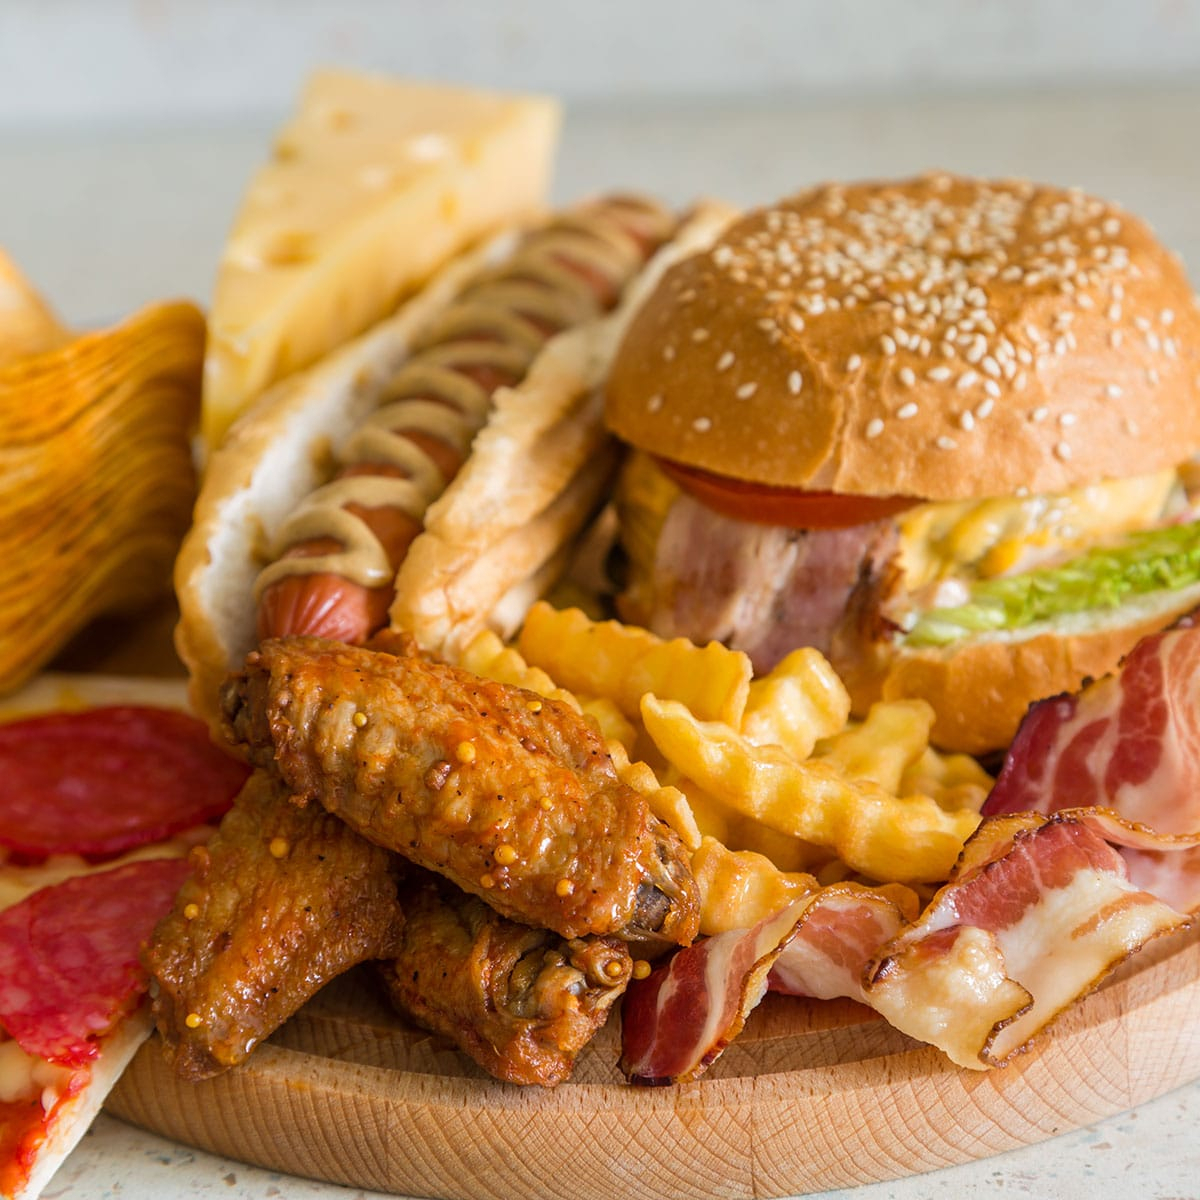 National Junk Food Day - July 21, 2021   National Today